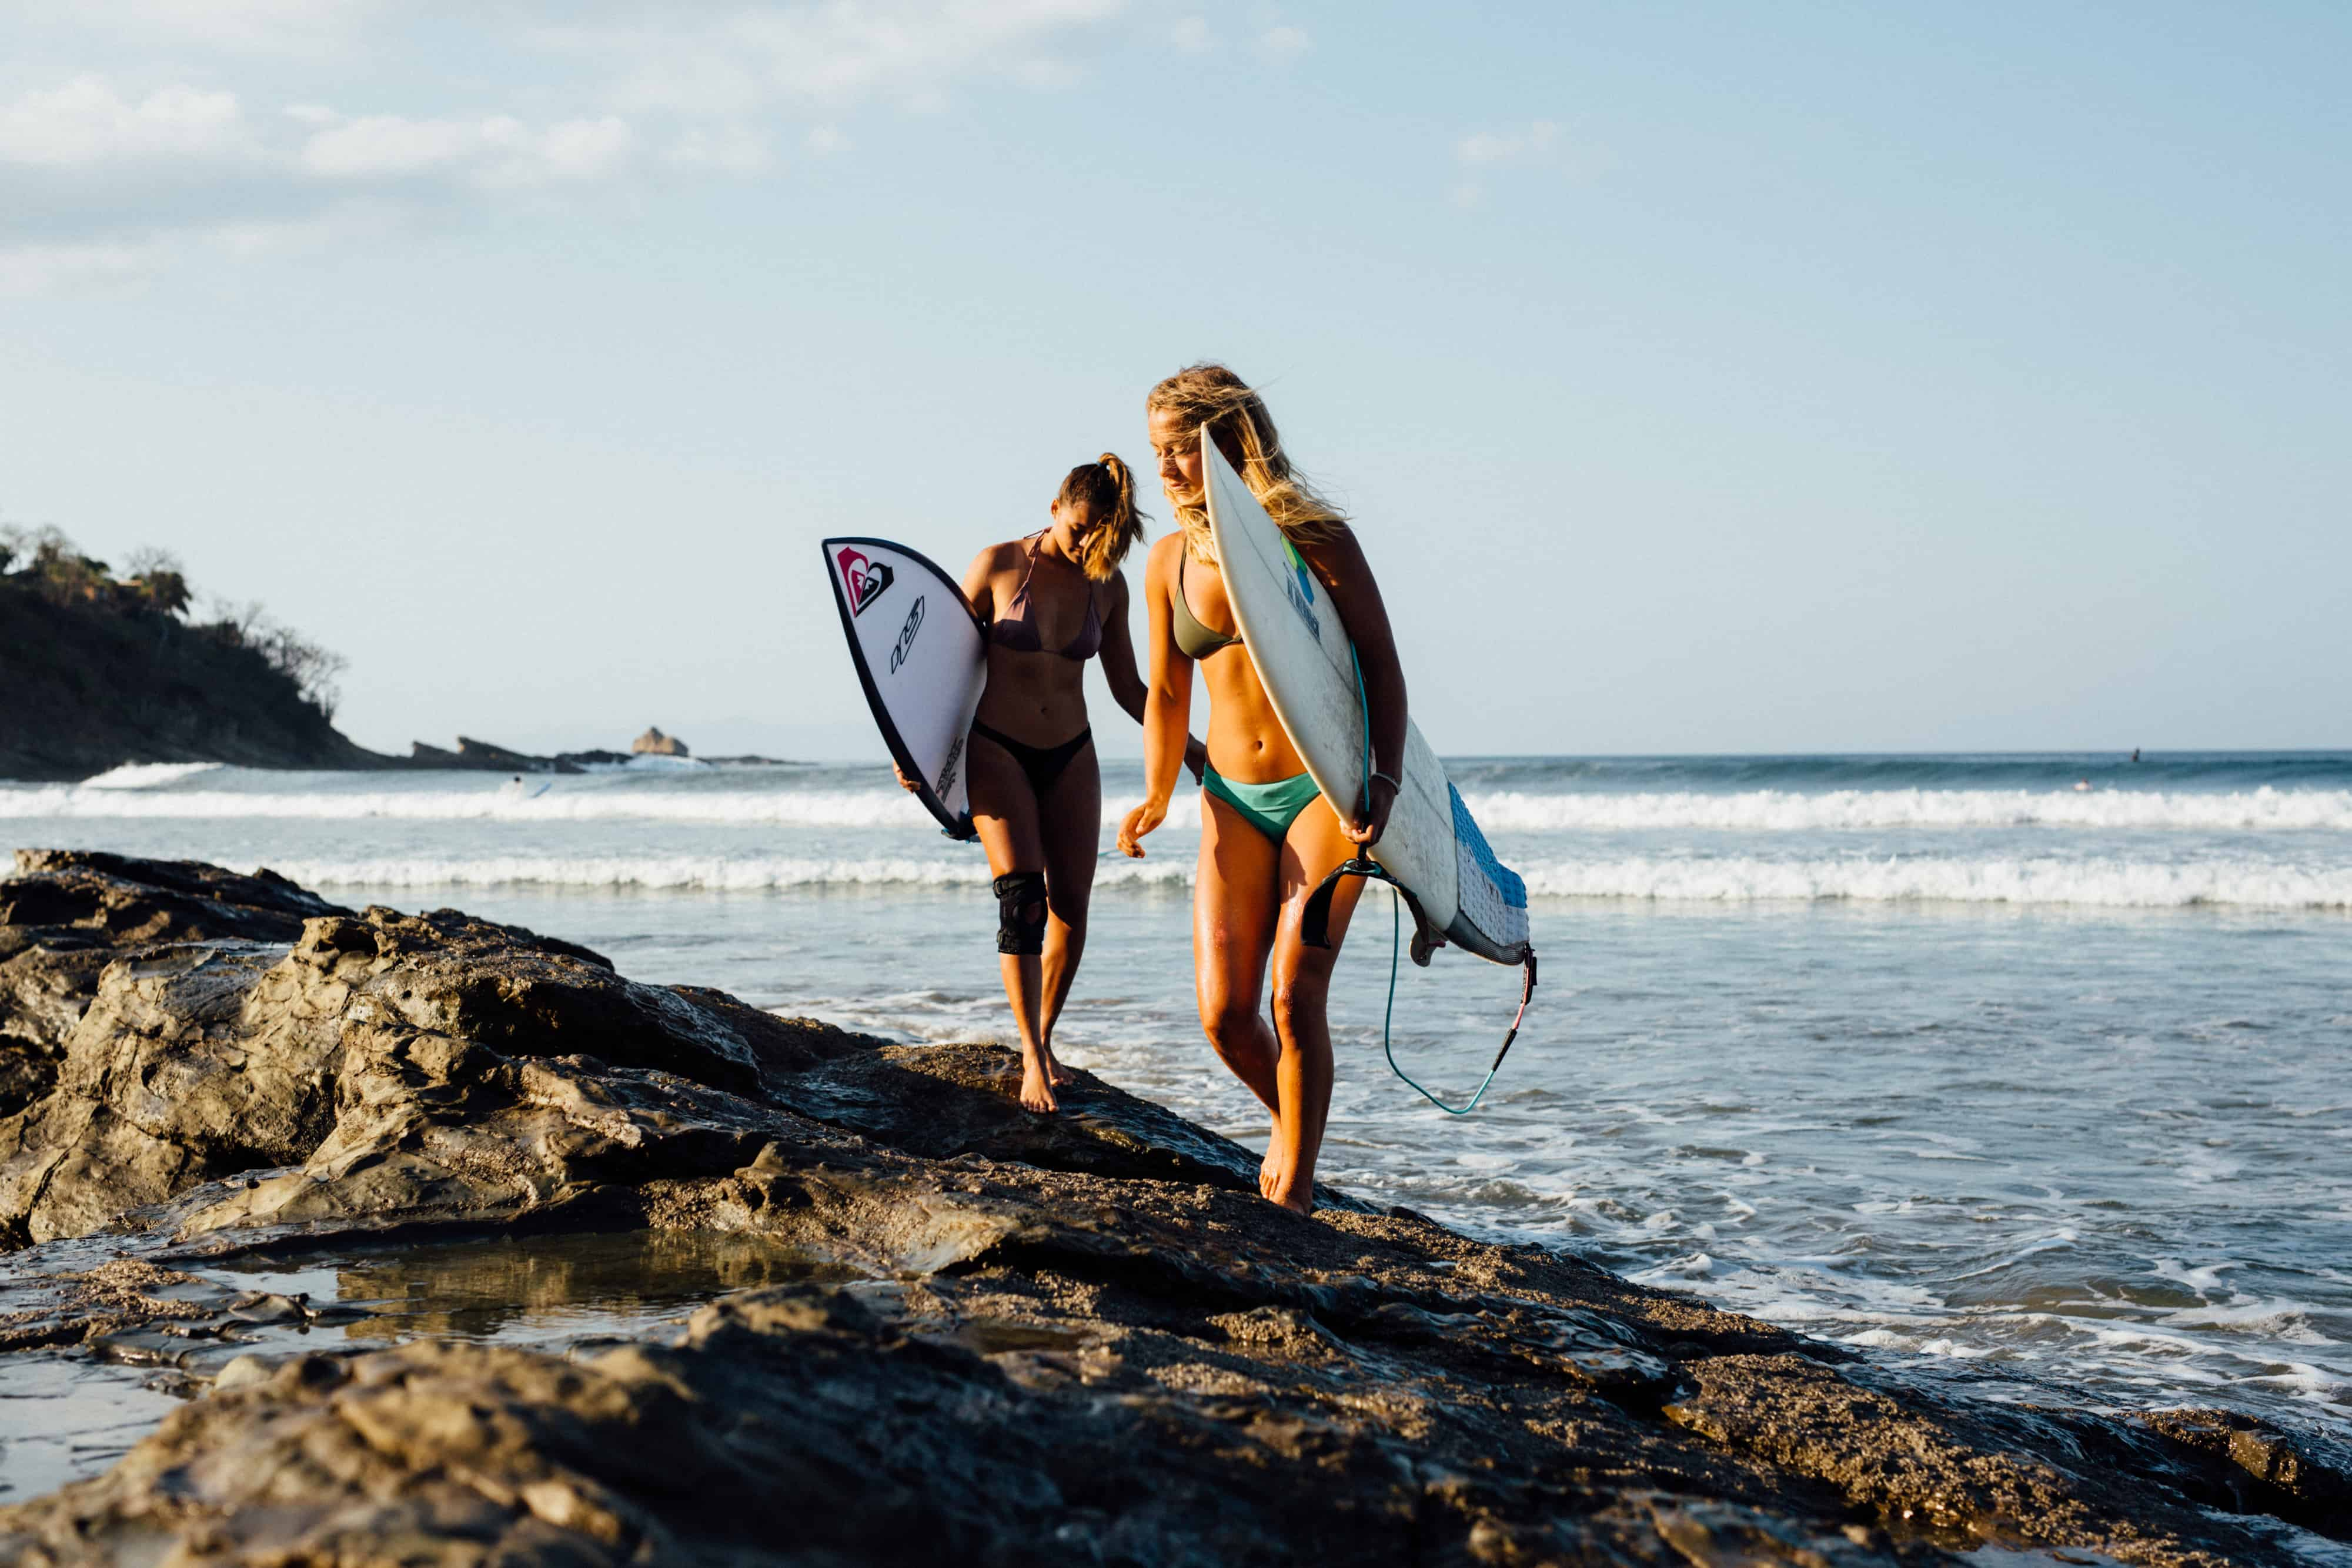 Carte Bali Surf.Surf Camps For Adults 9 Best Surf Camps Around The World